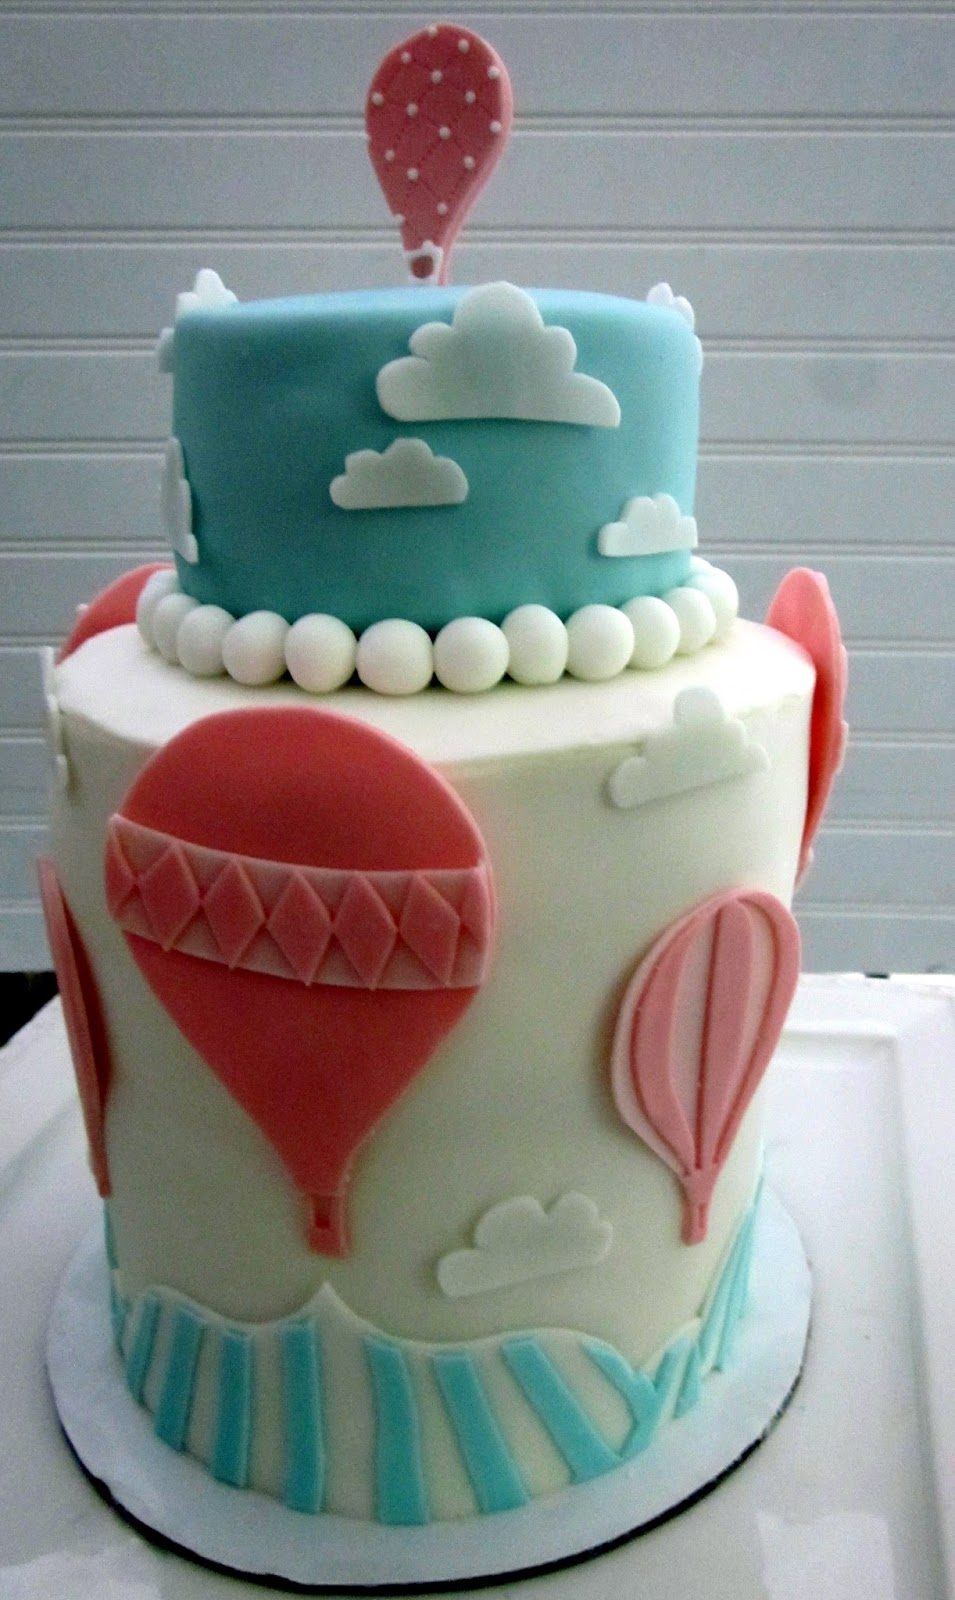 Cake Design Ballarat : Darlin  Designs: Hot Air Balloon Cake and Cupcakes